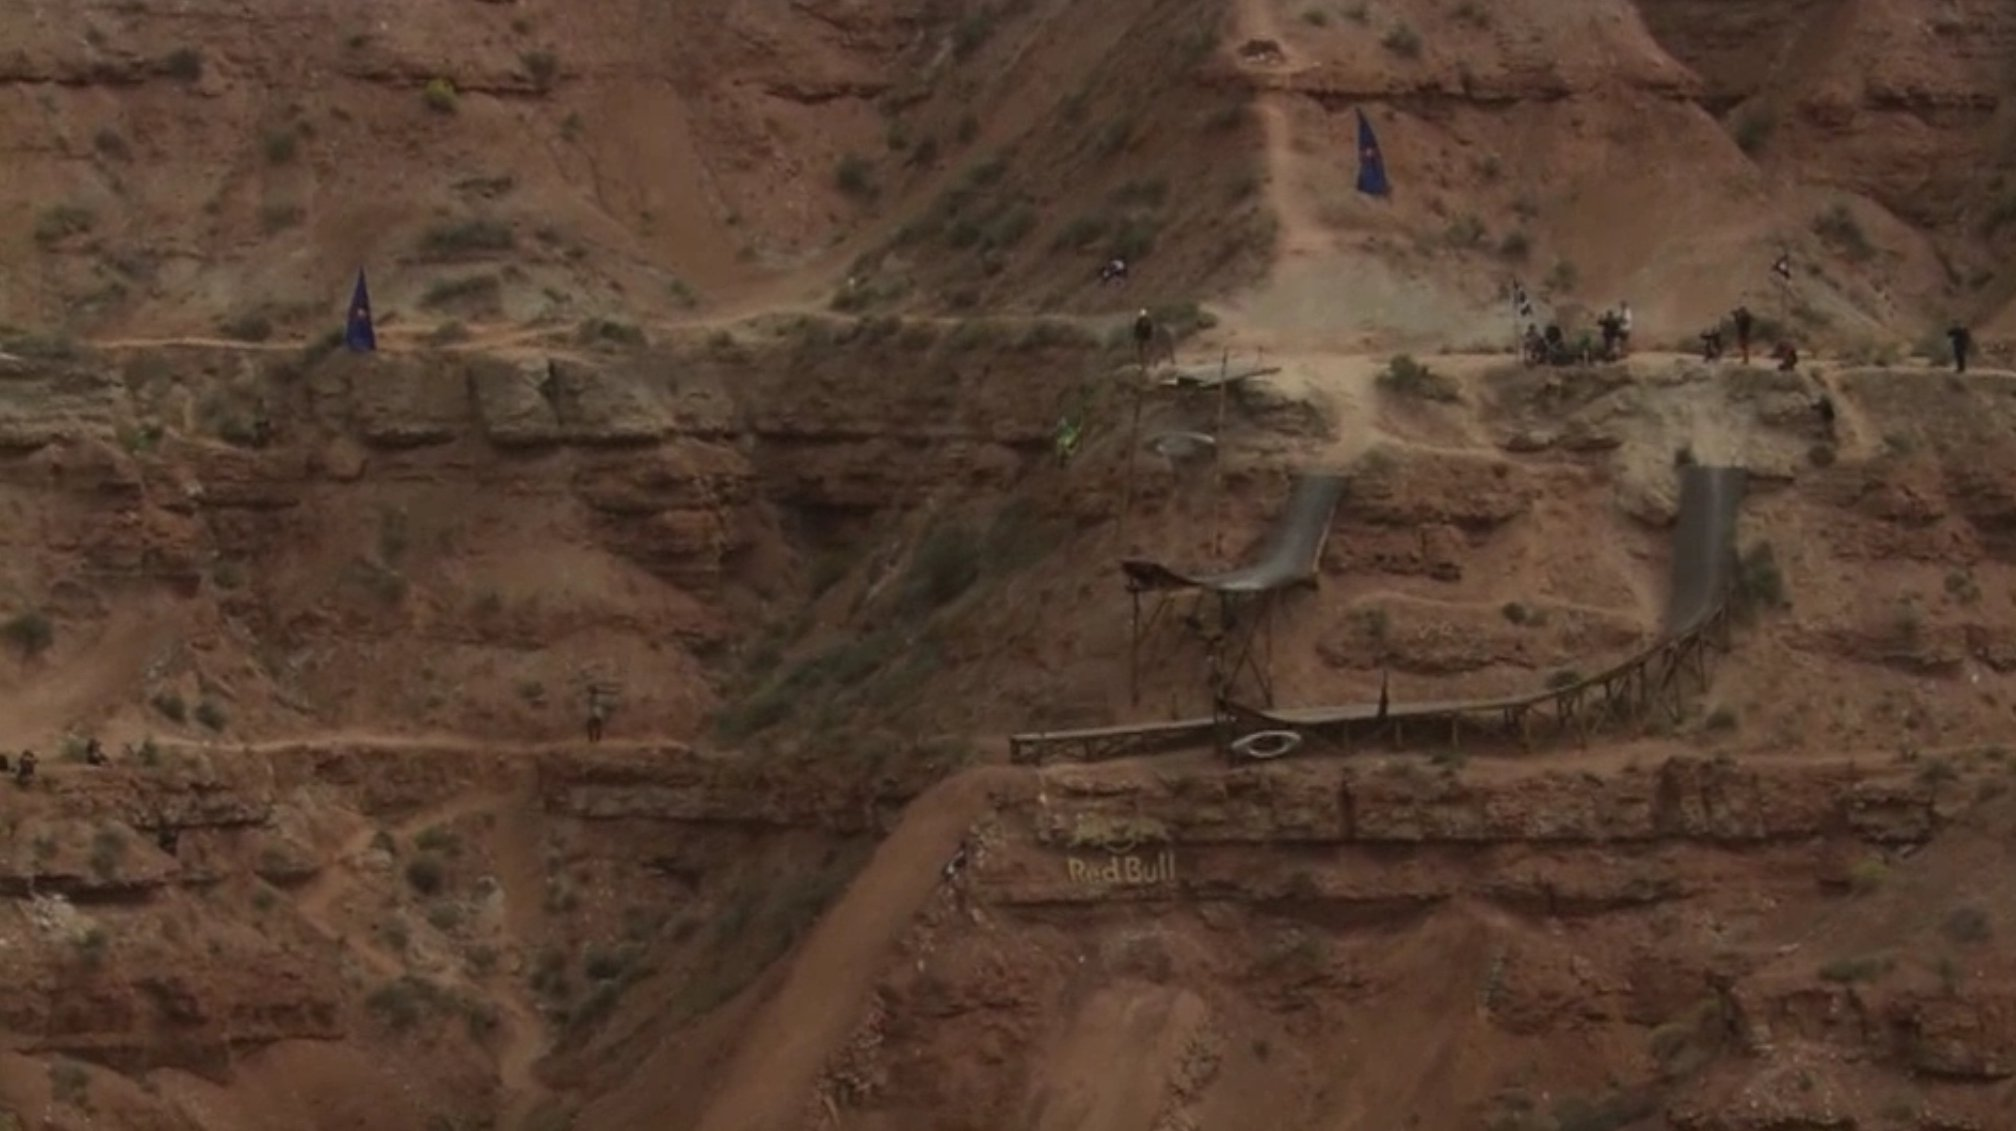 red_bull_rampage_2013_cam_zink_backflip_icon_sender